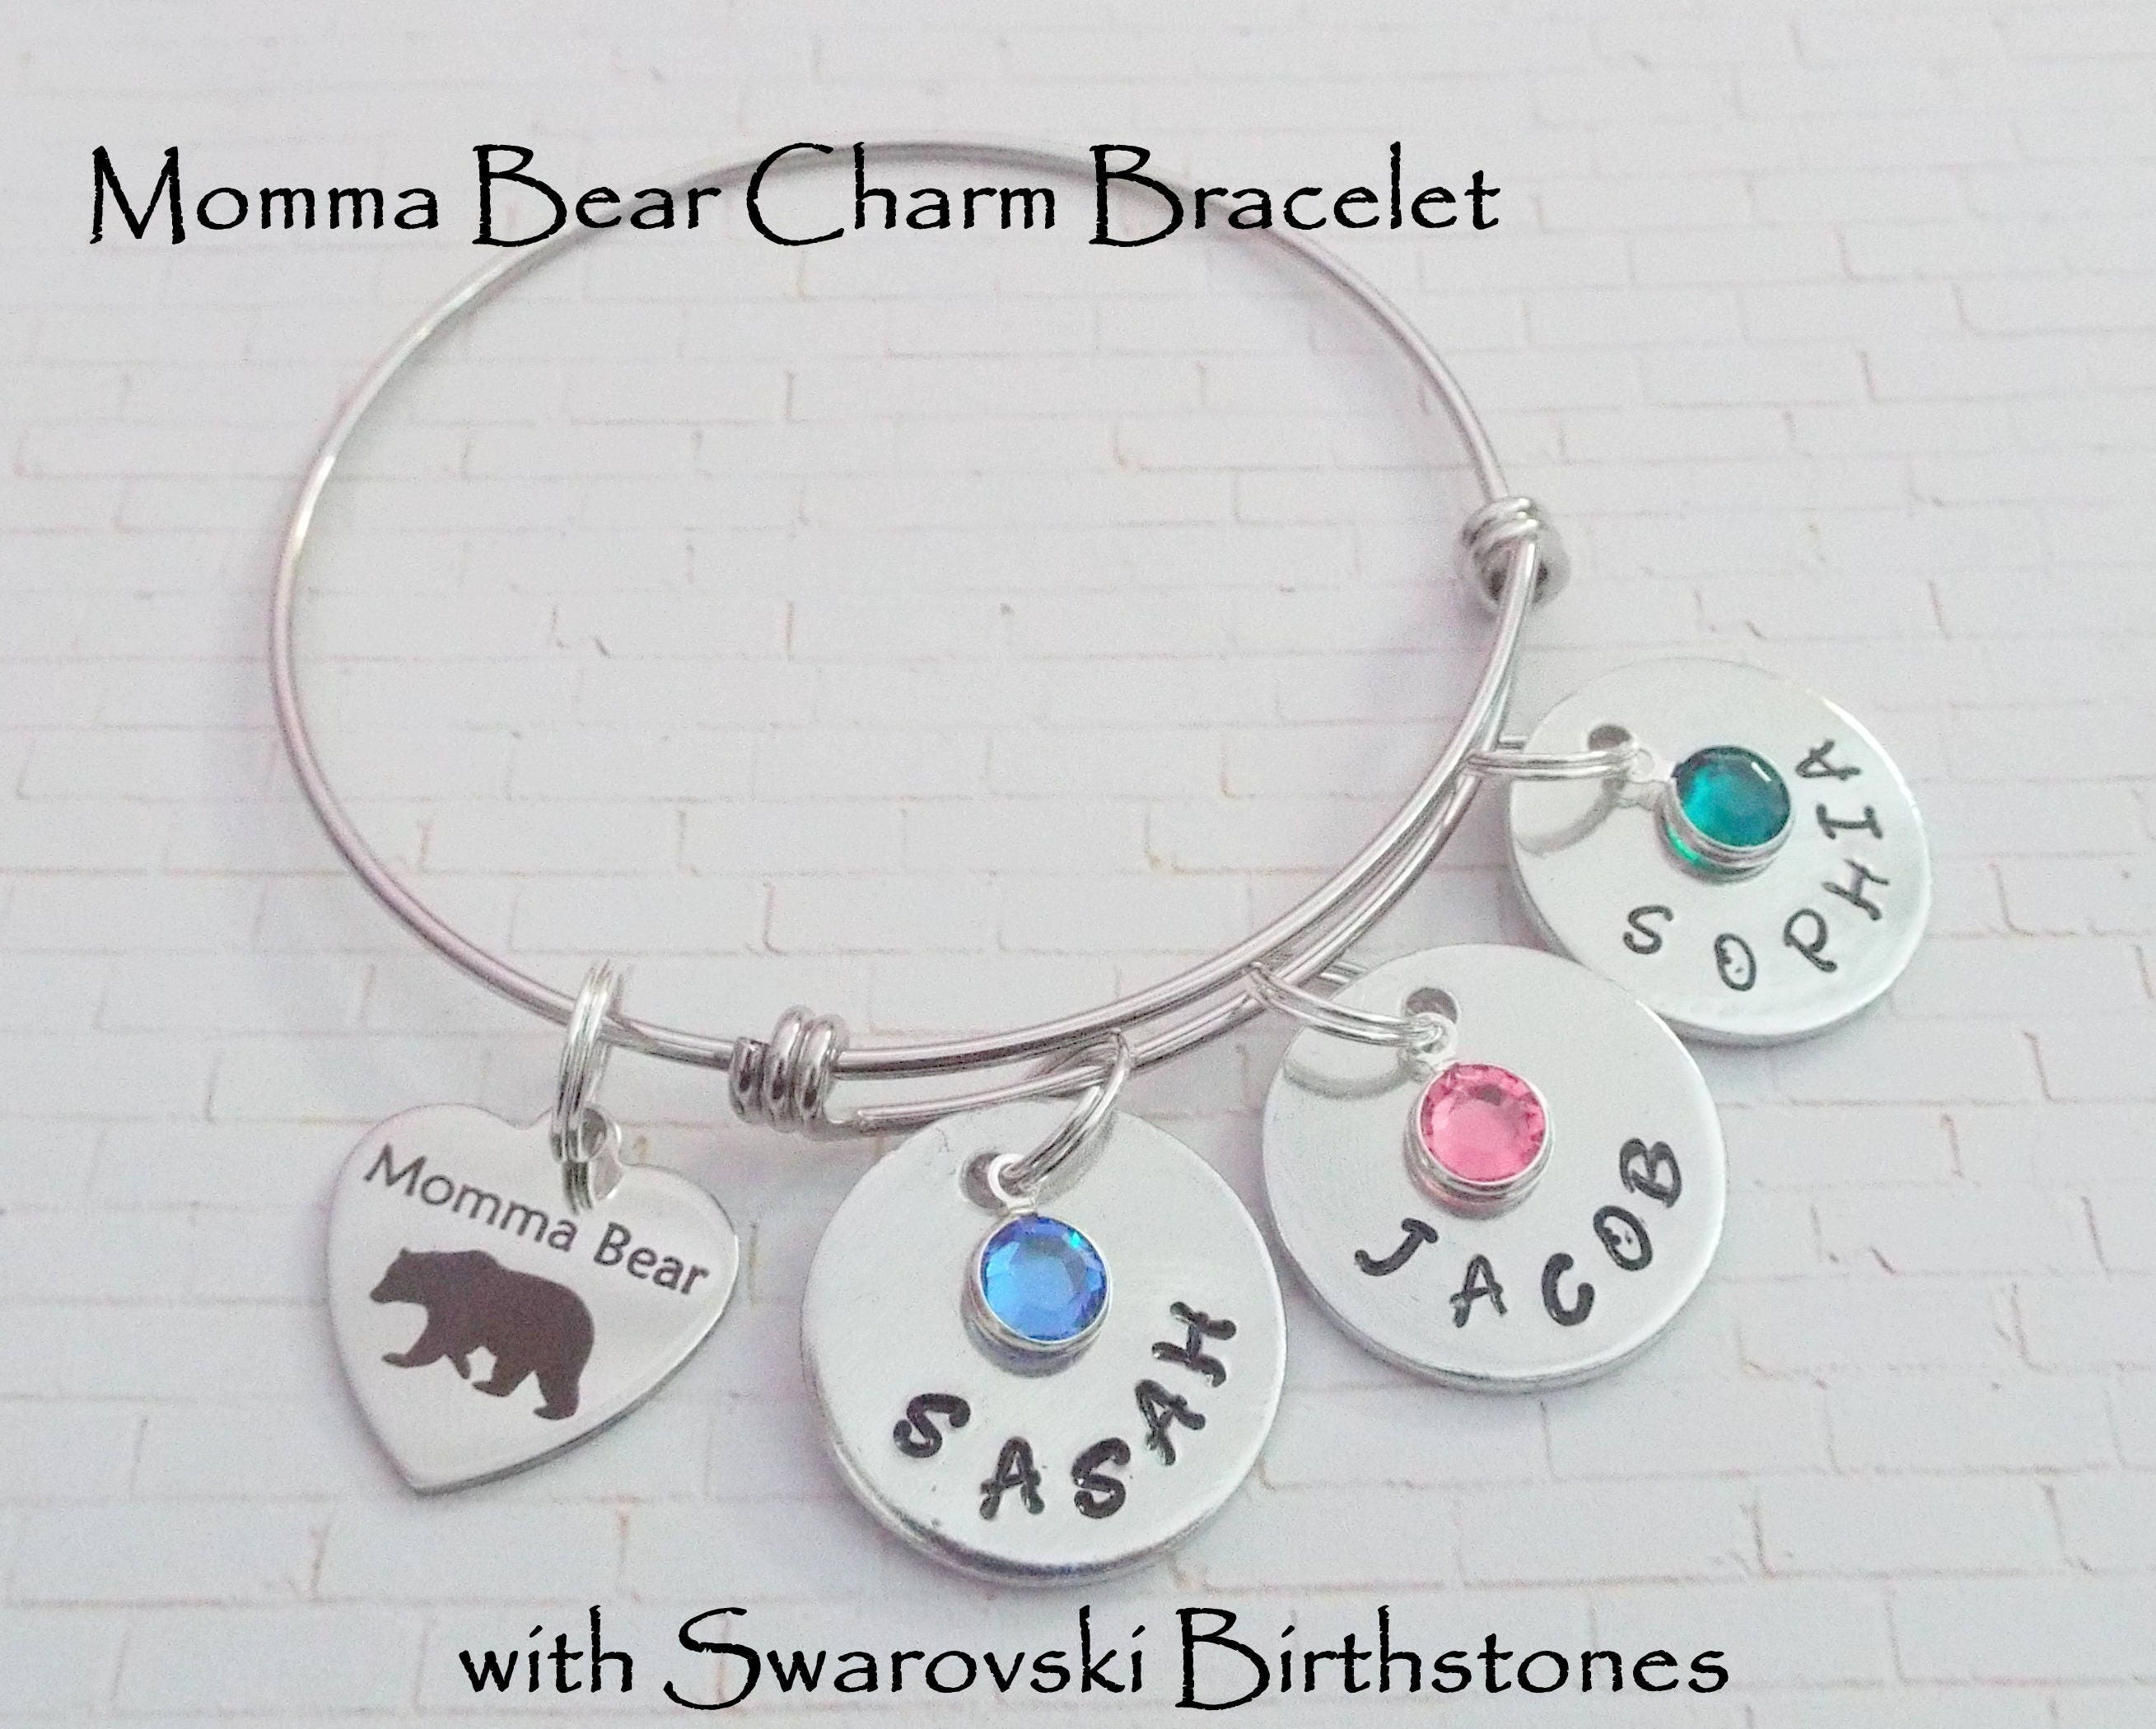 store for find in will mother birthstone jewelry my you silver names mom pin bracelet personalize childrens charm with gifts bracelets s